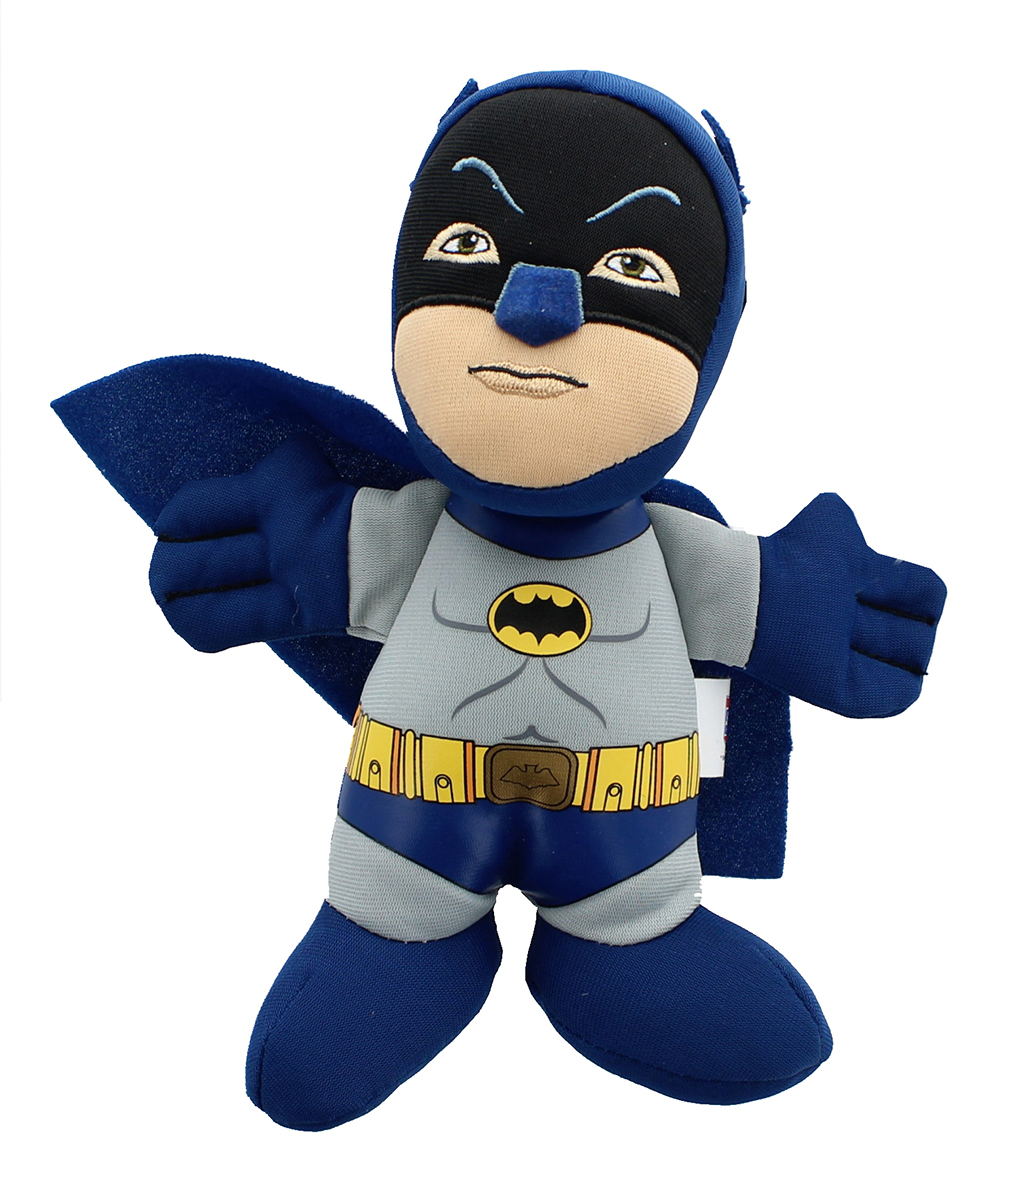 "Batman Classic TV Series 7"" Batman Plush Figure by Bleacher Creatures LLC"